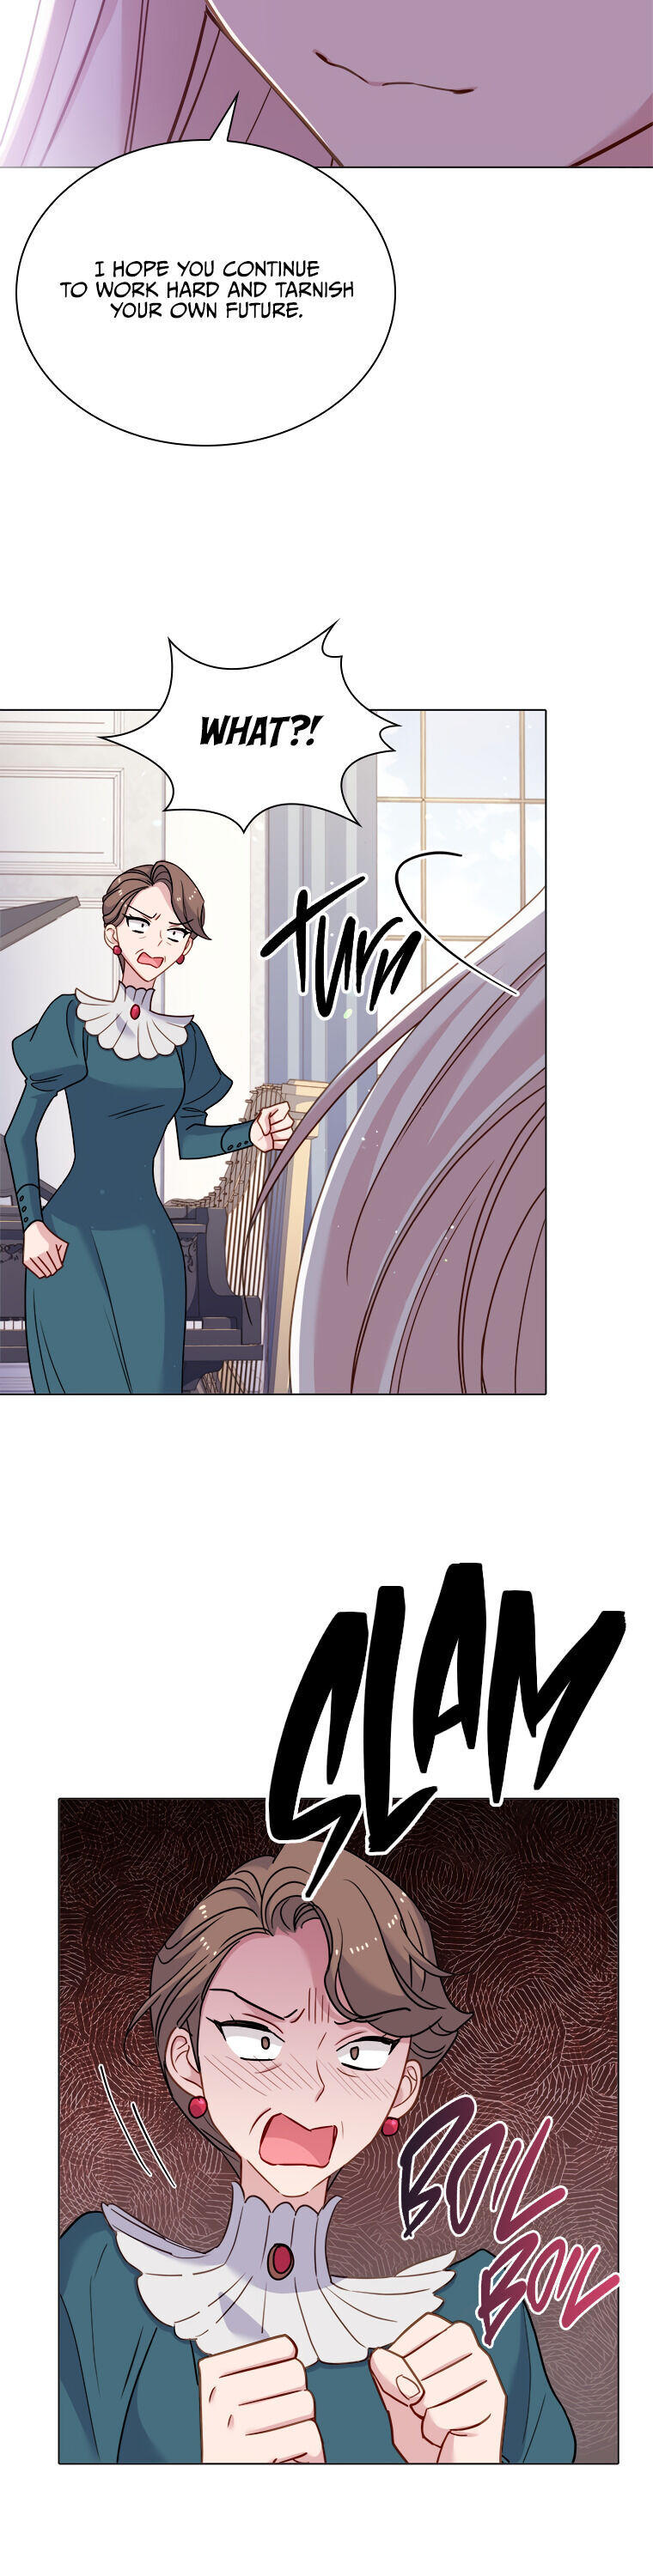 The Lady Wants To Rest (Promo) Chapter 39 page 20 - Mangakakalots.com